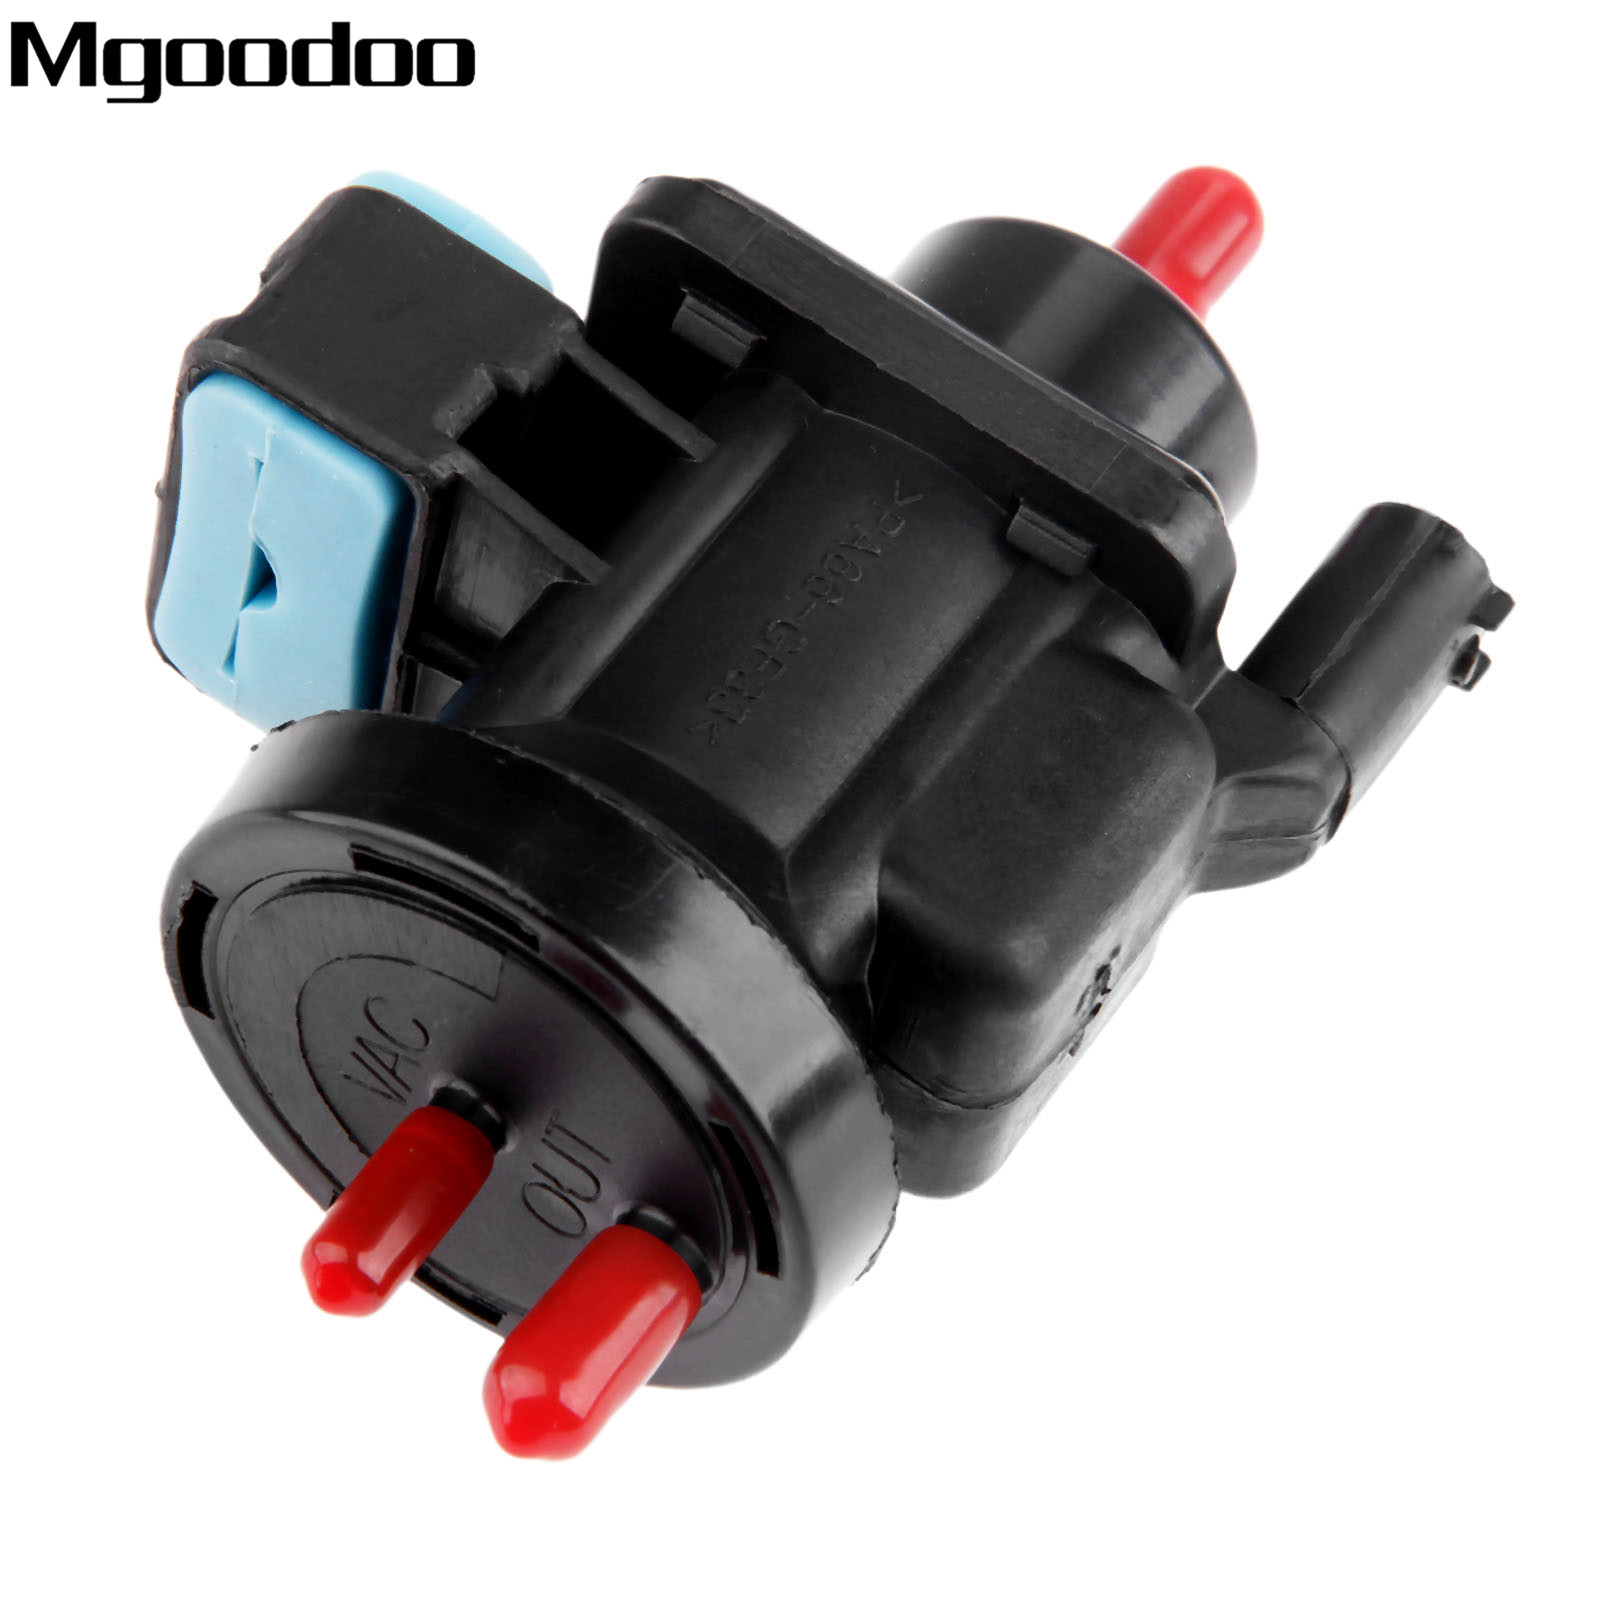 Turbo Boost Valve Pressure Converter Sprinter A0005450527 <font><b>0005450427</b></font> 0005450527 A0005450427 for JeepGrand Cherokee Mercedes-Benz image